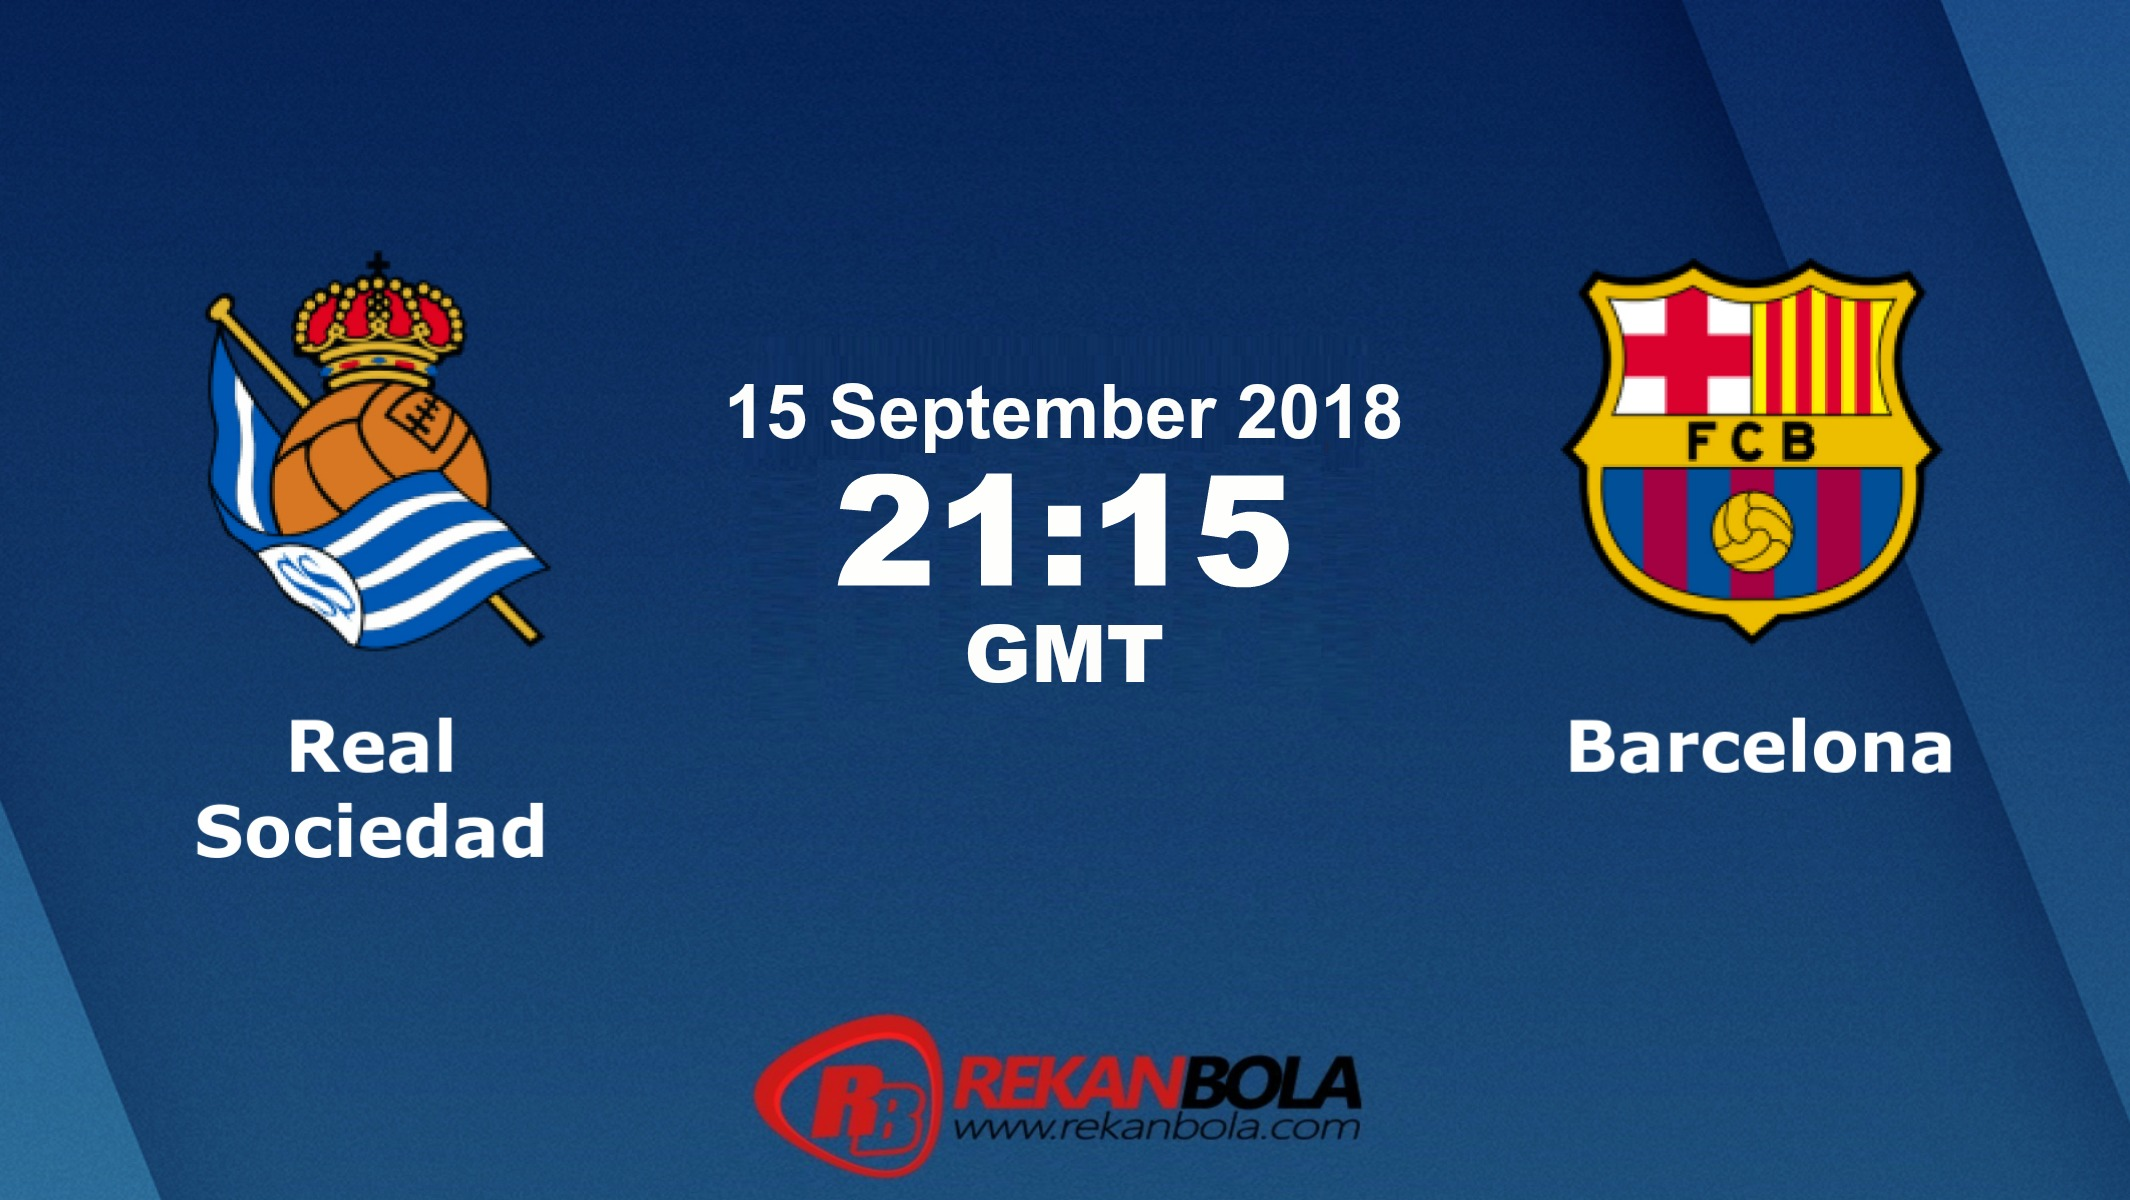 Nonton Siaran Live Streaming Sociedad Vs Barcelona 15 September 2018